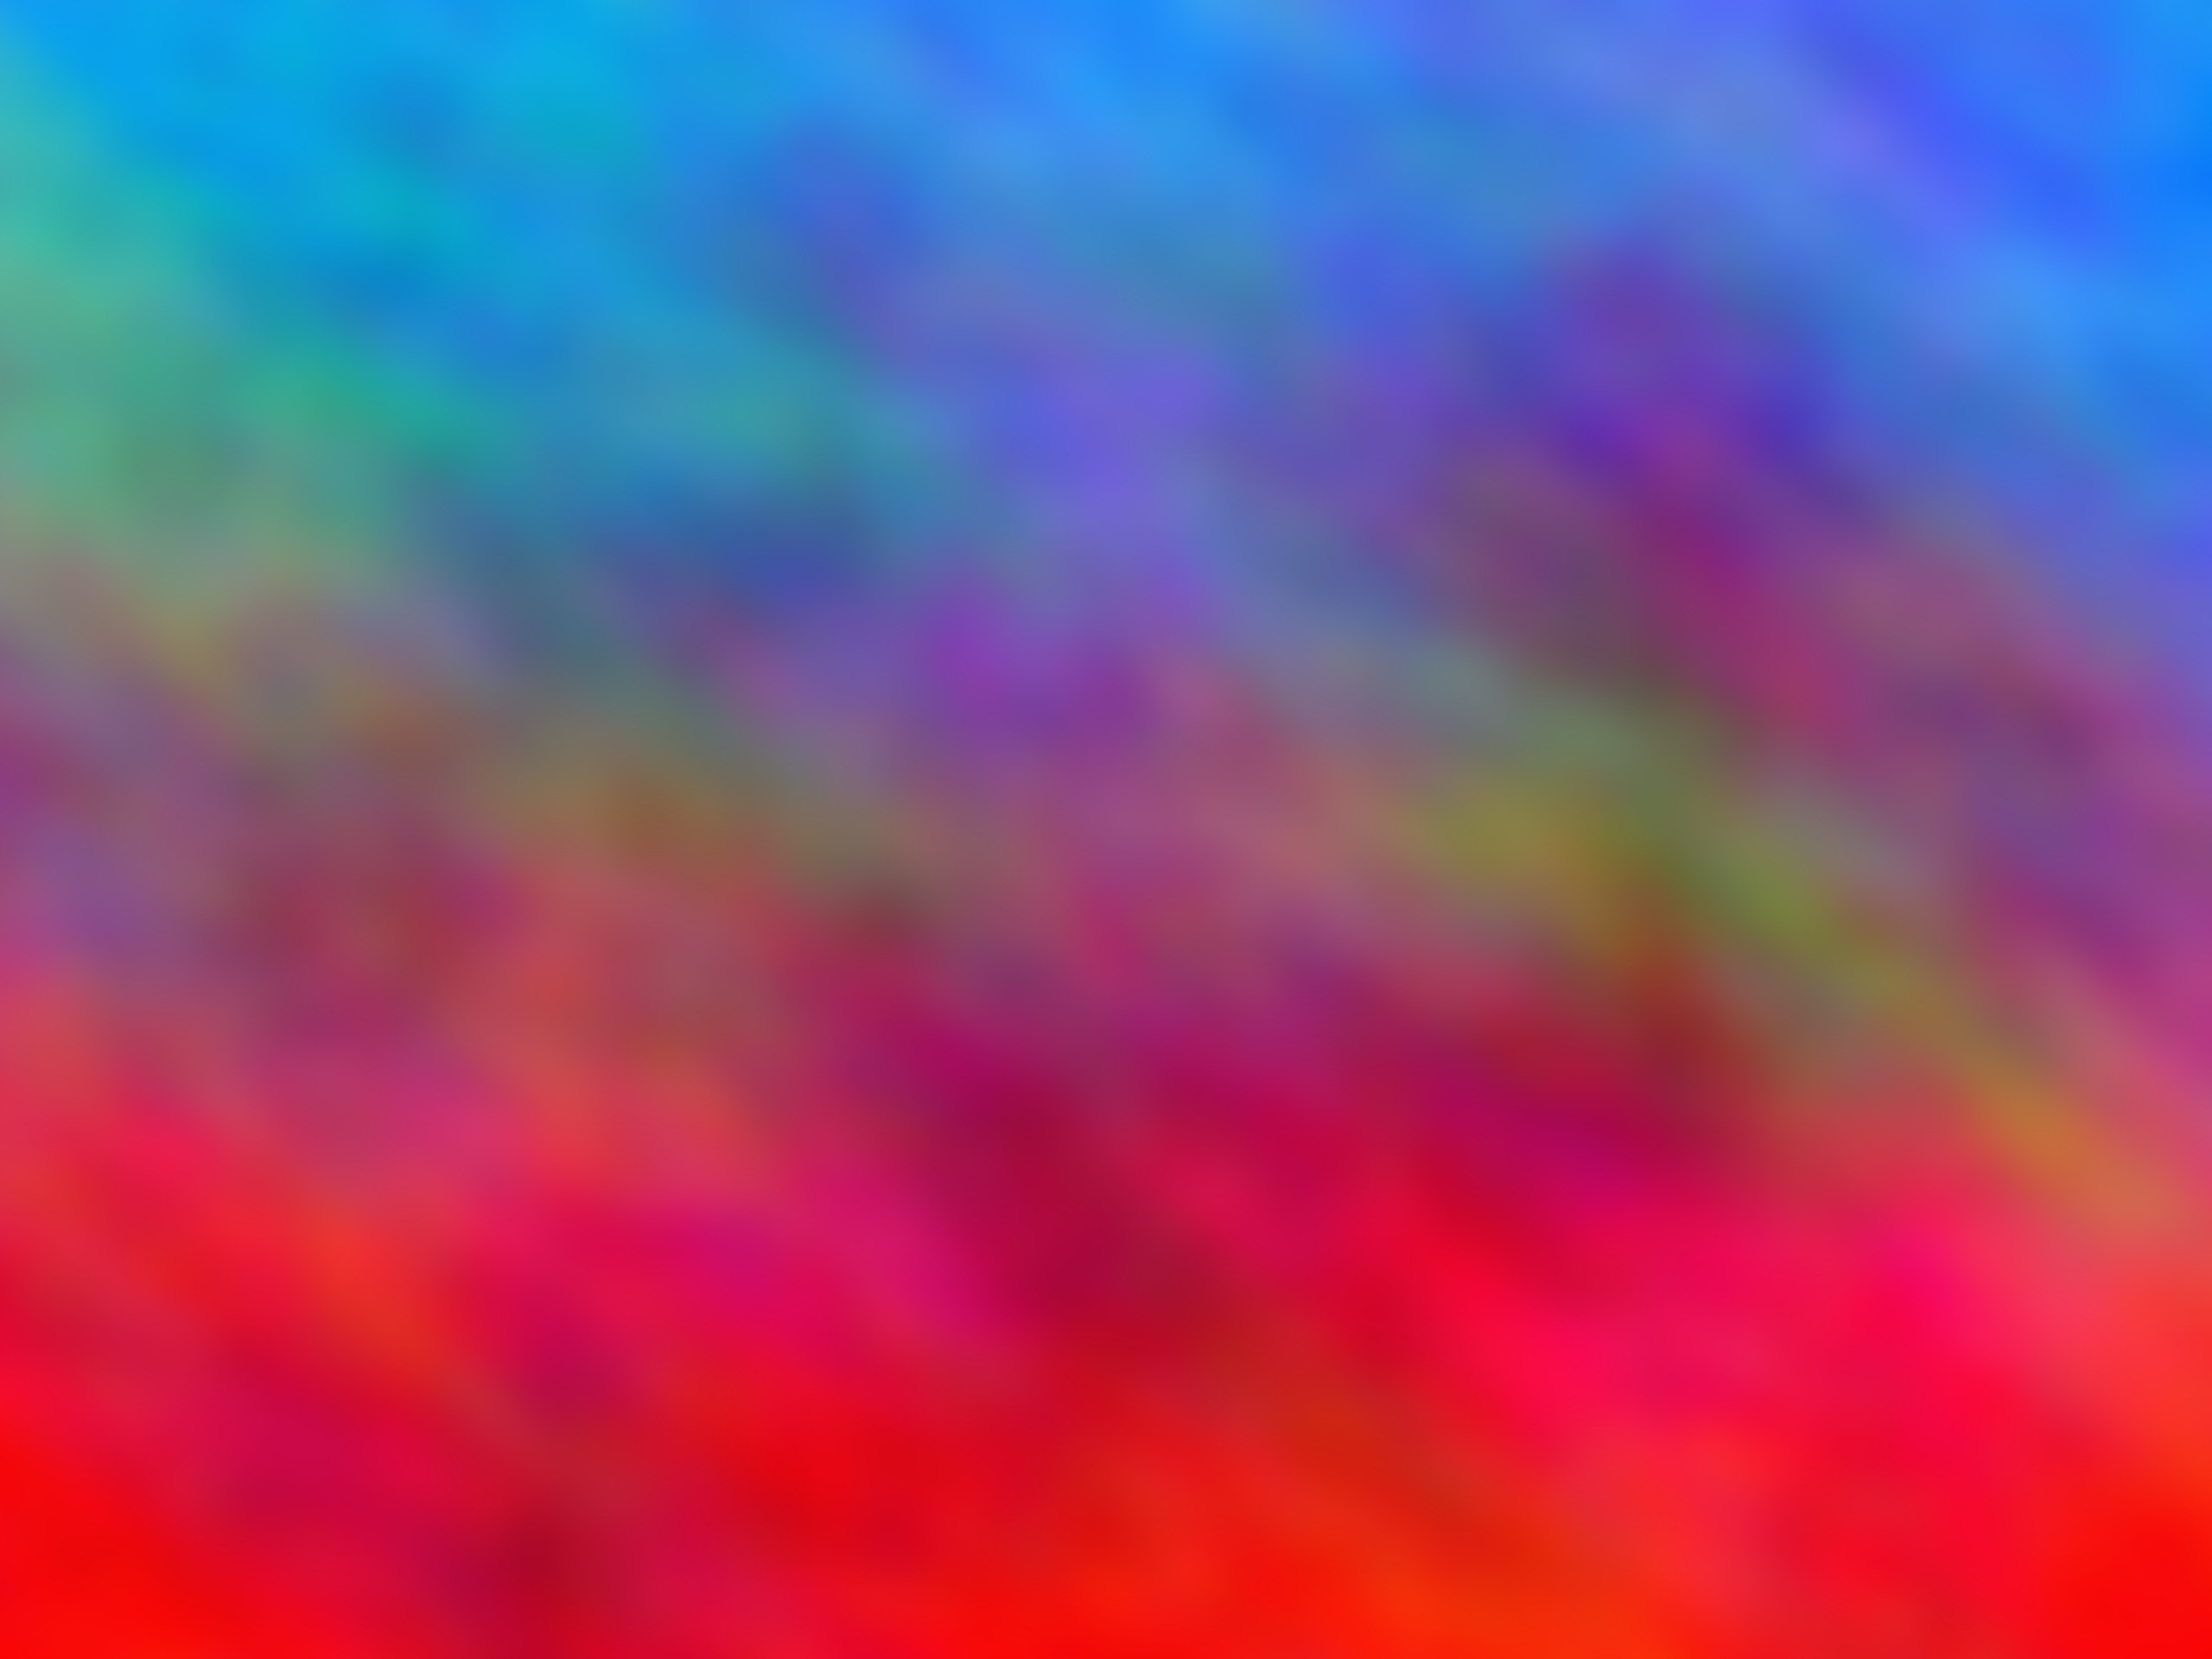 … colors Red and blue abstract background